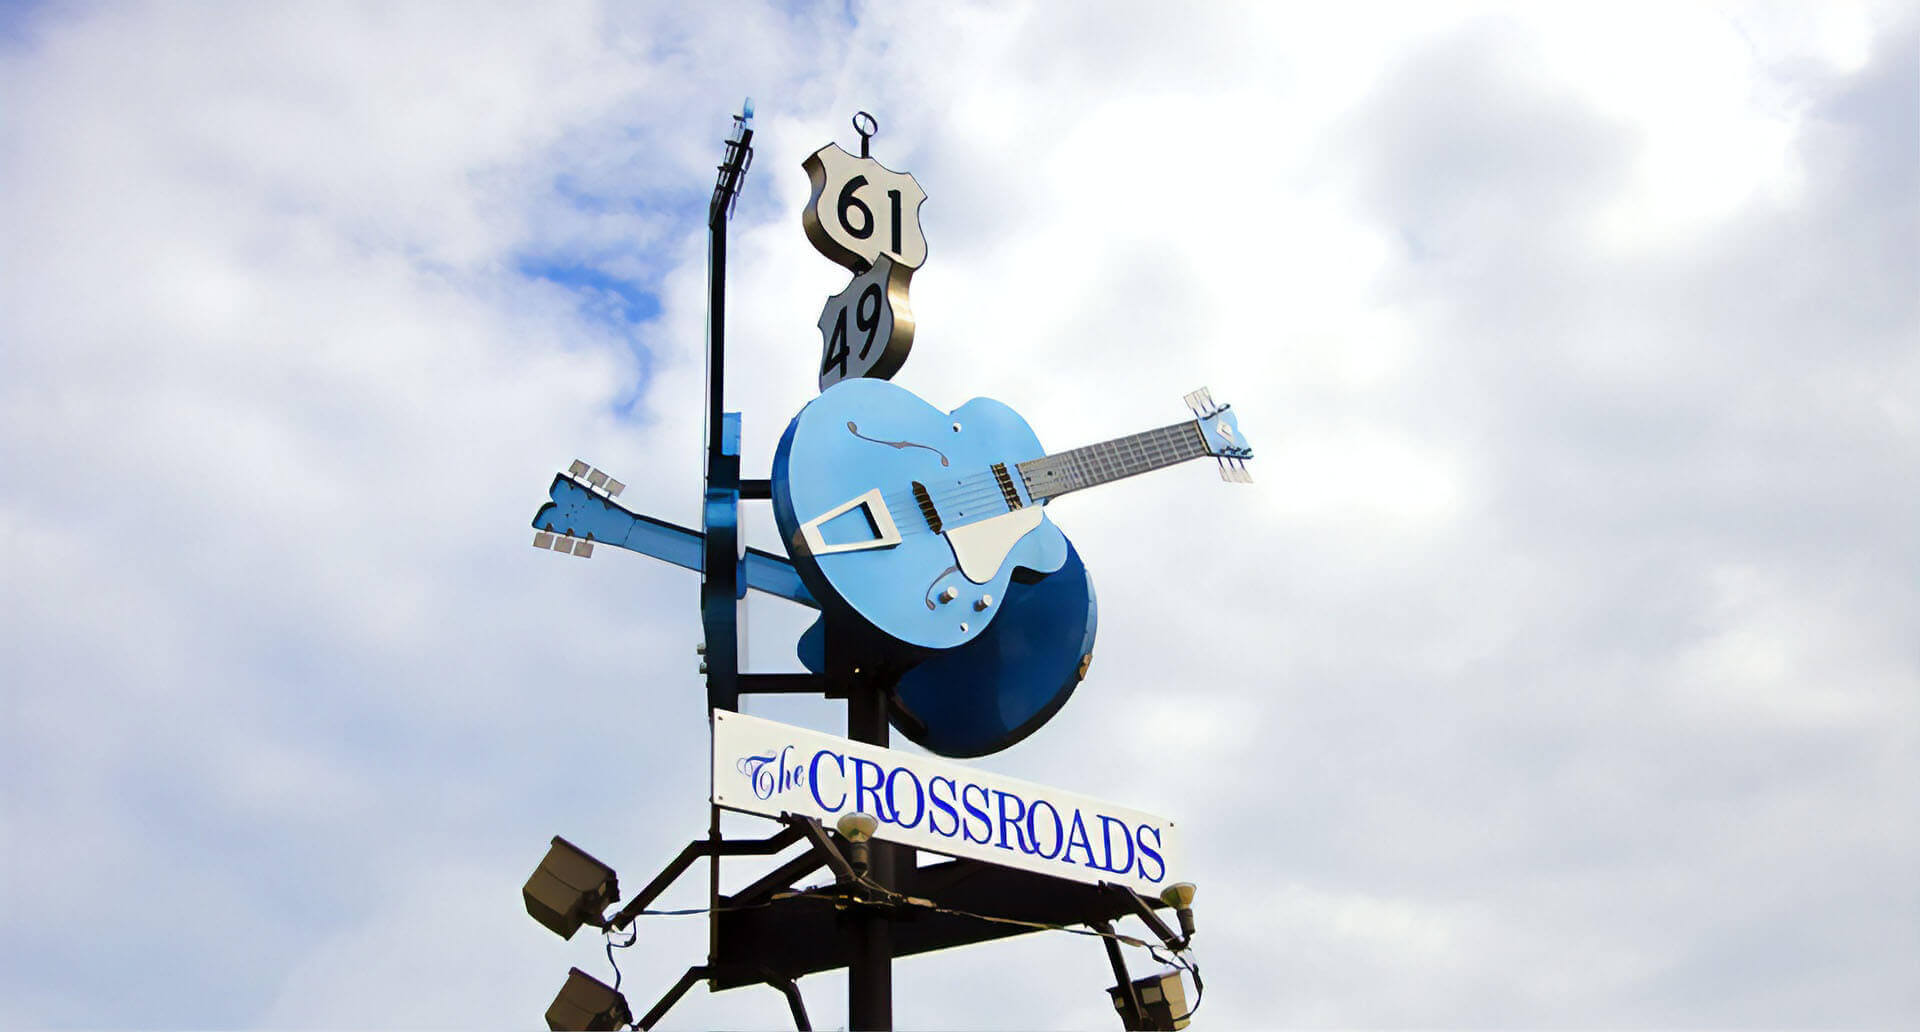 The crossroads sign with blue guitars